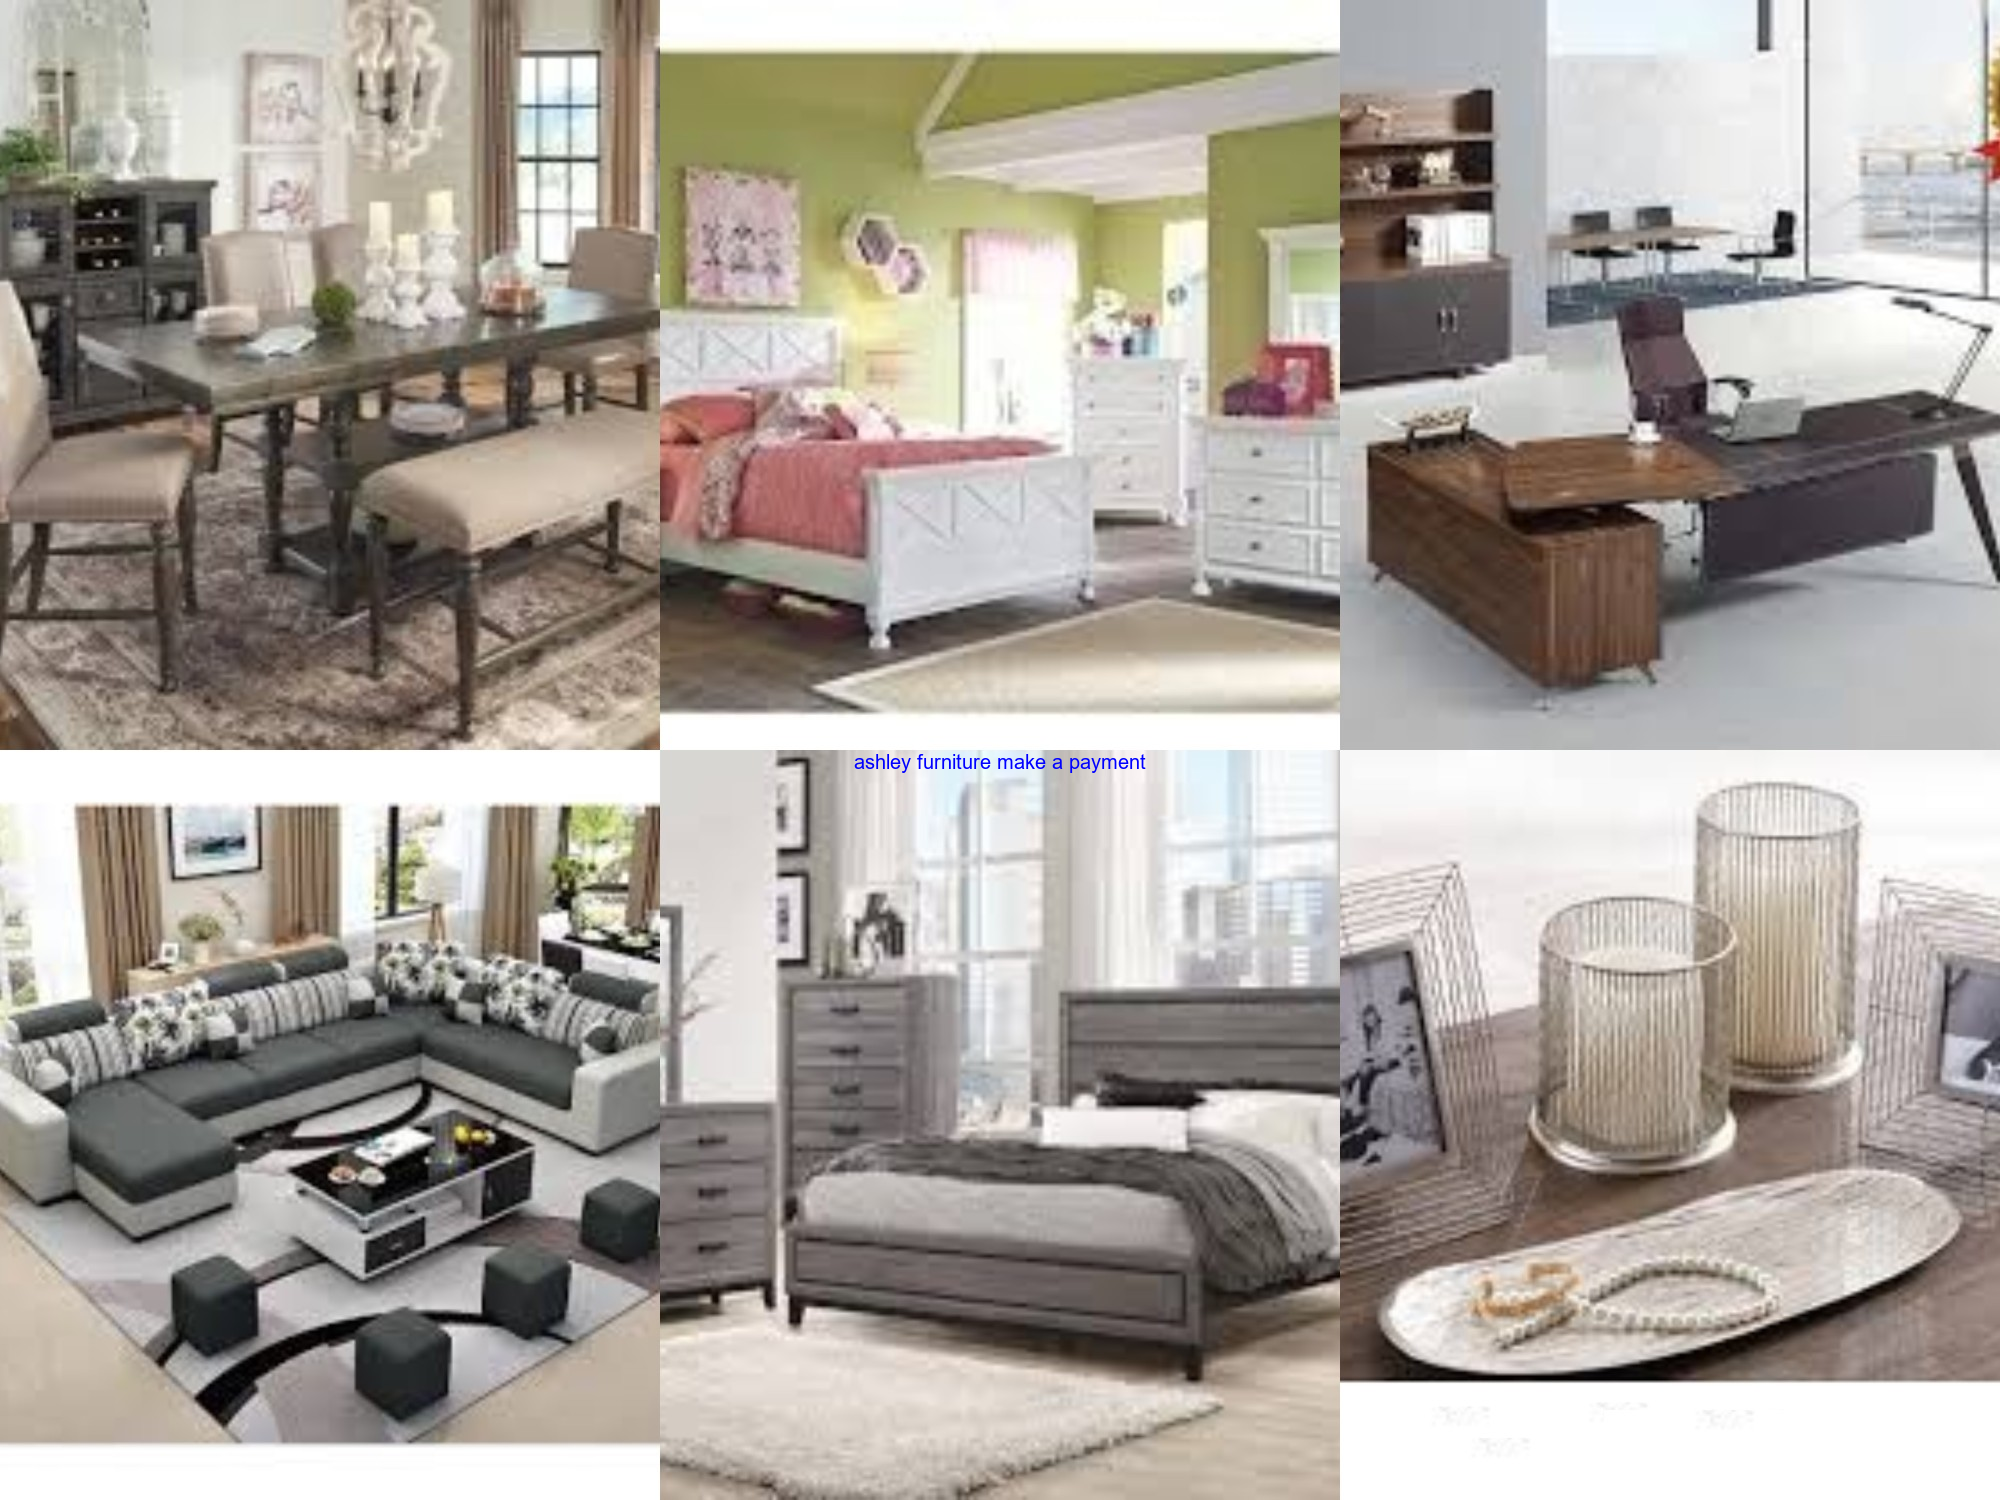 Ashley Furniture Make A Payment In 2020 Furniture Prices Furniture Wholesale Furniture